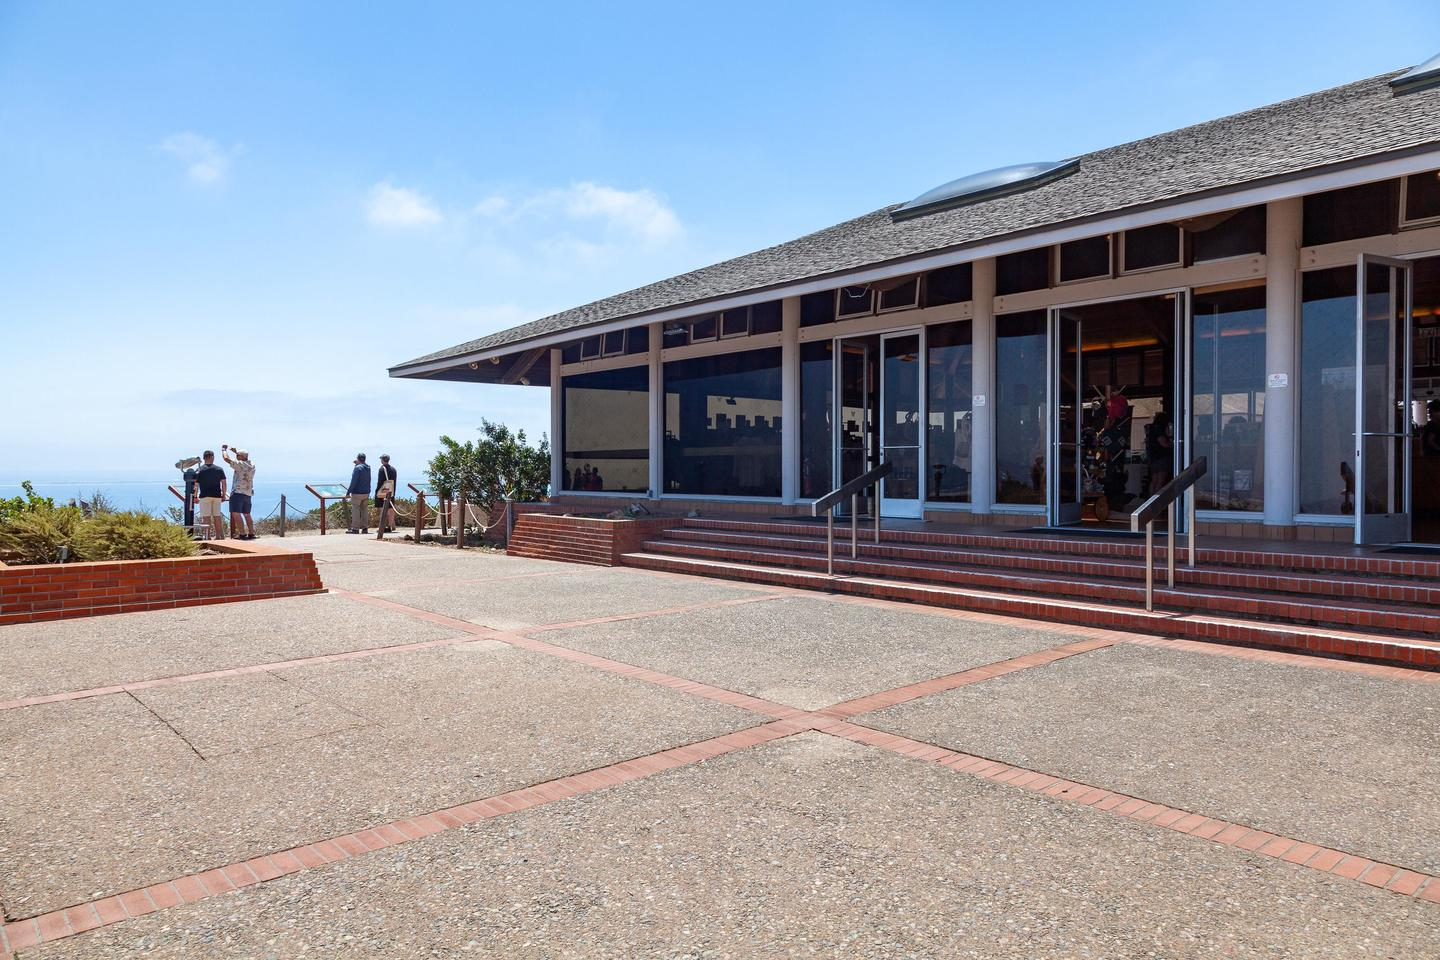 Back entrance to the View Building.The patio at the rear of the View Building. Telescopes are present as well as a view of Ballast Point from this spot.